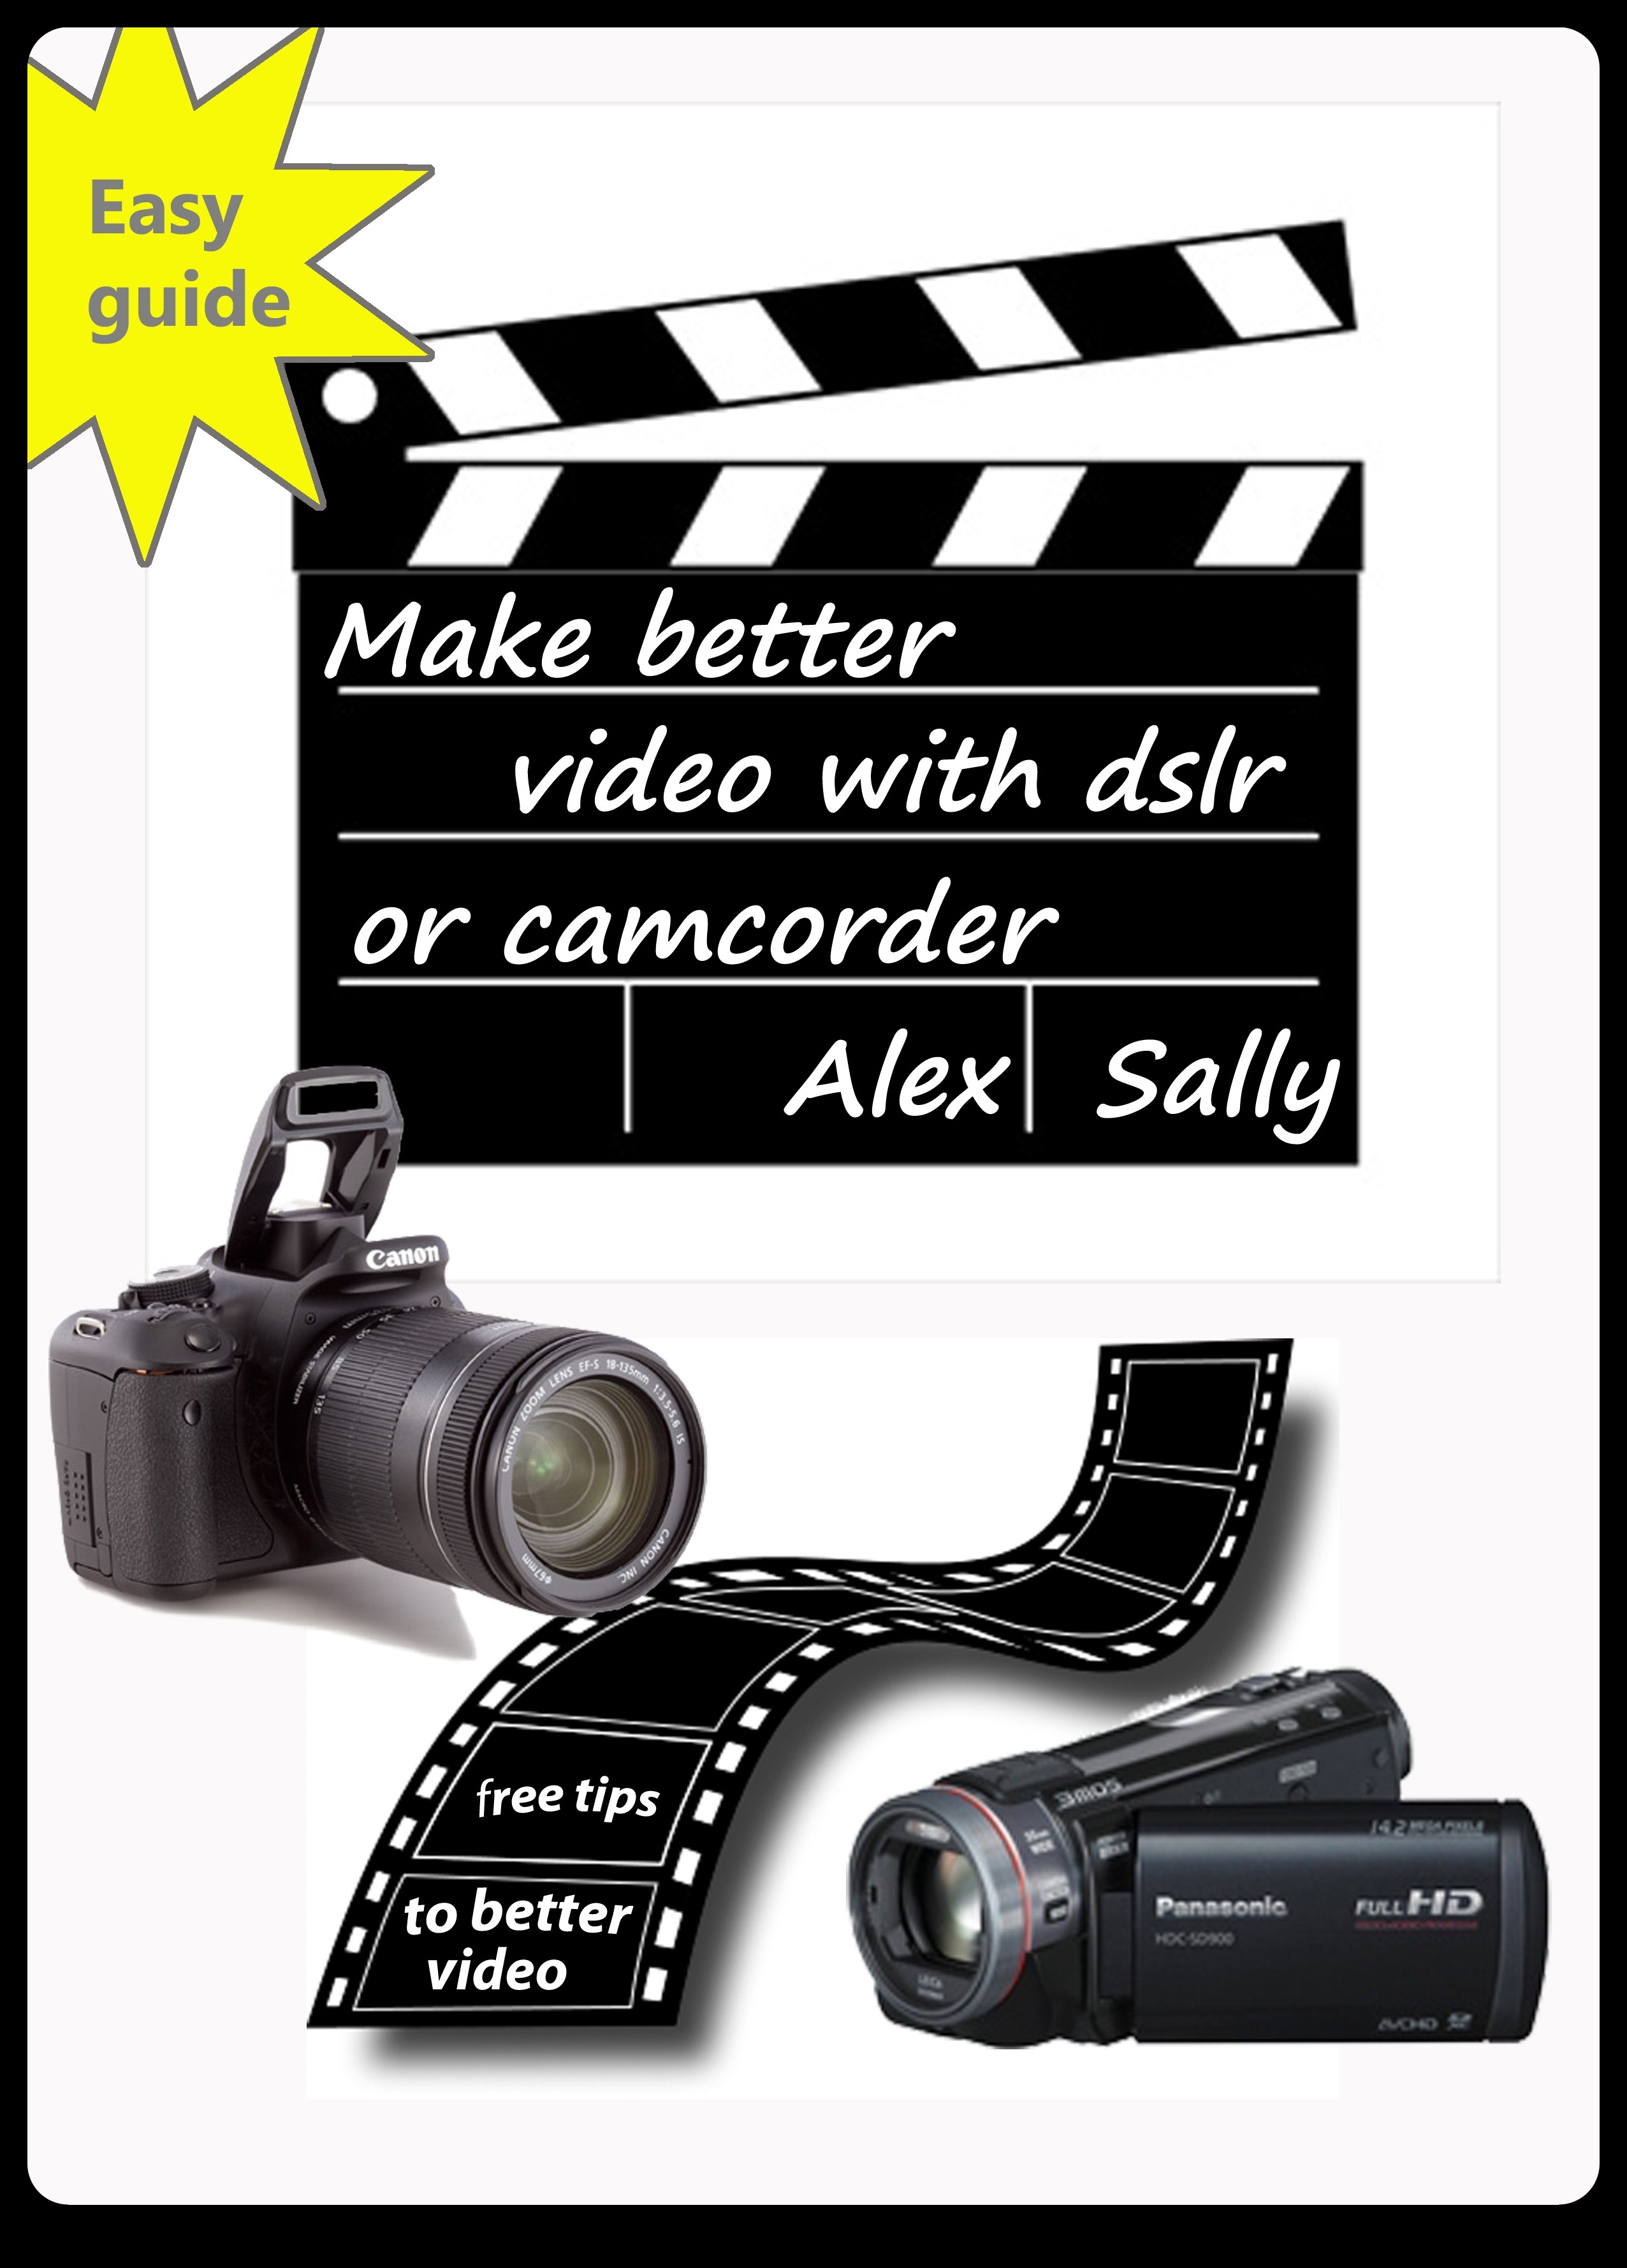 Make better videos with your dslr or camcorder